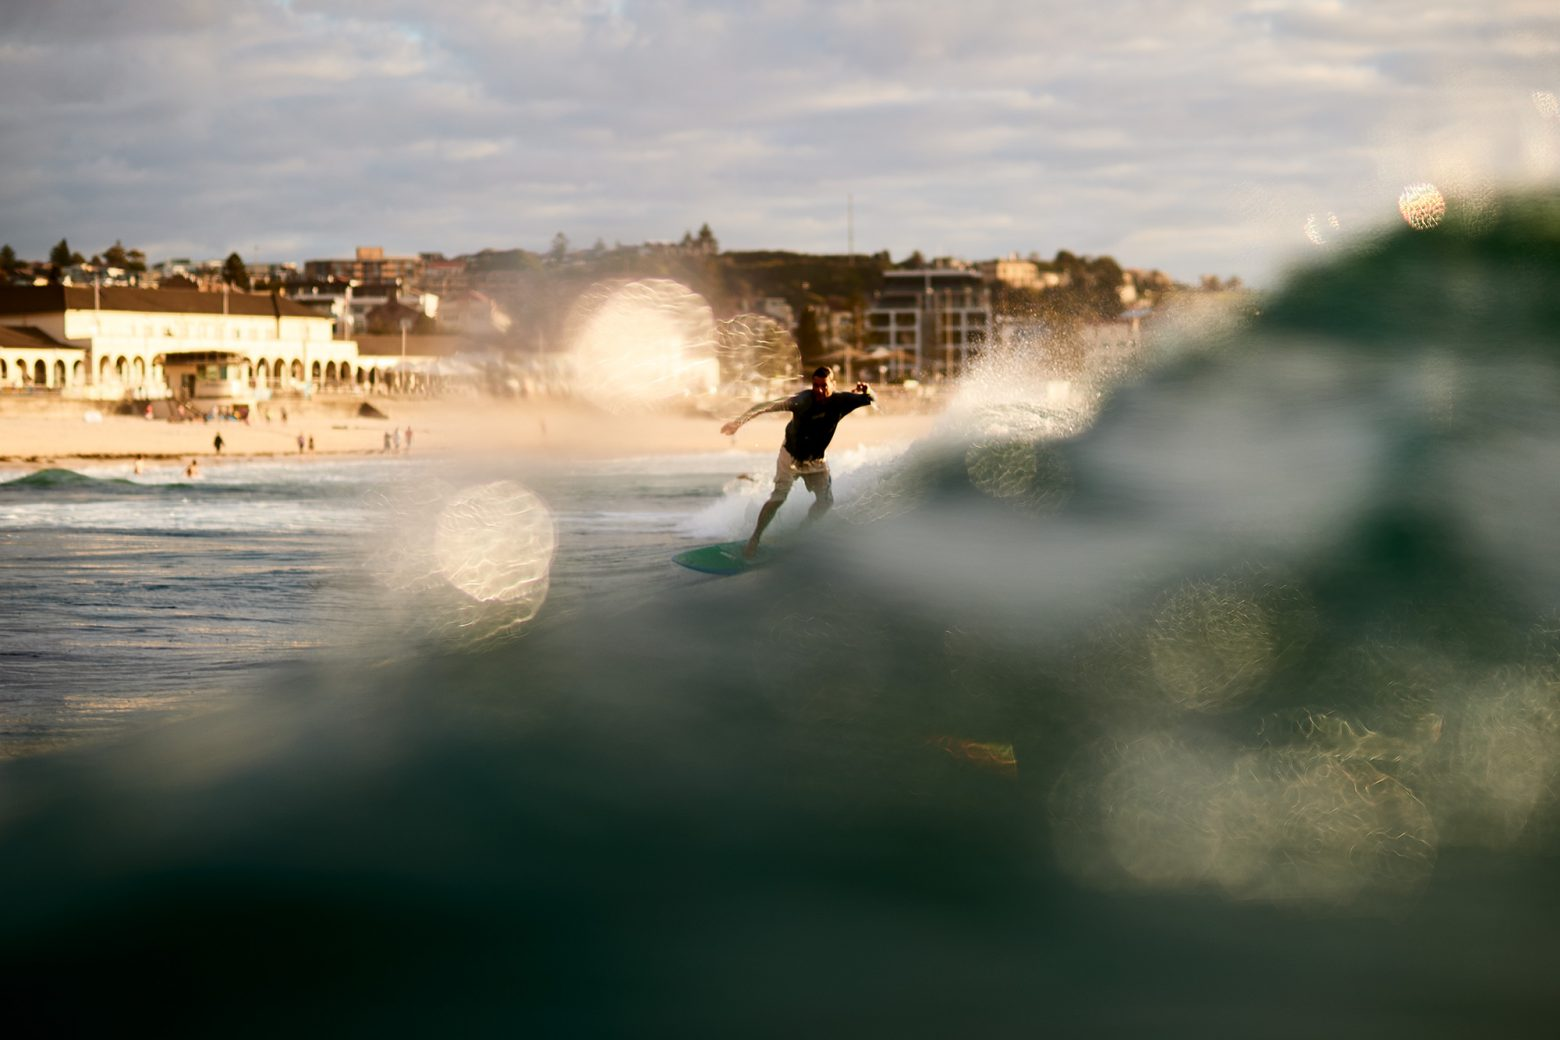 Morning weed slider, Bondi